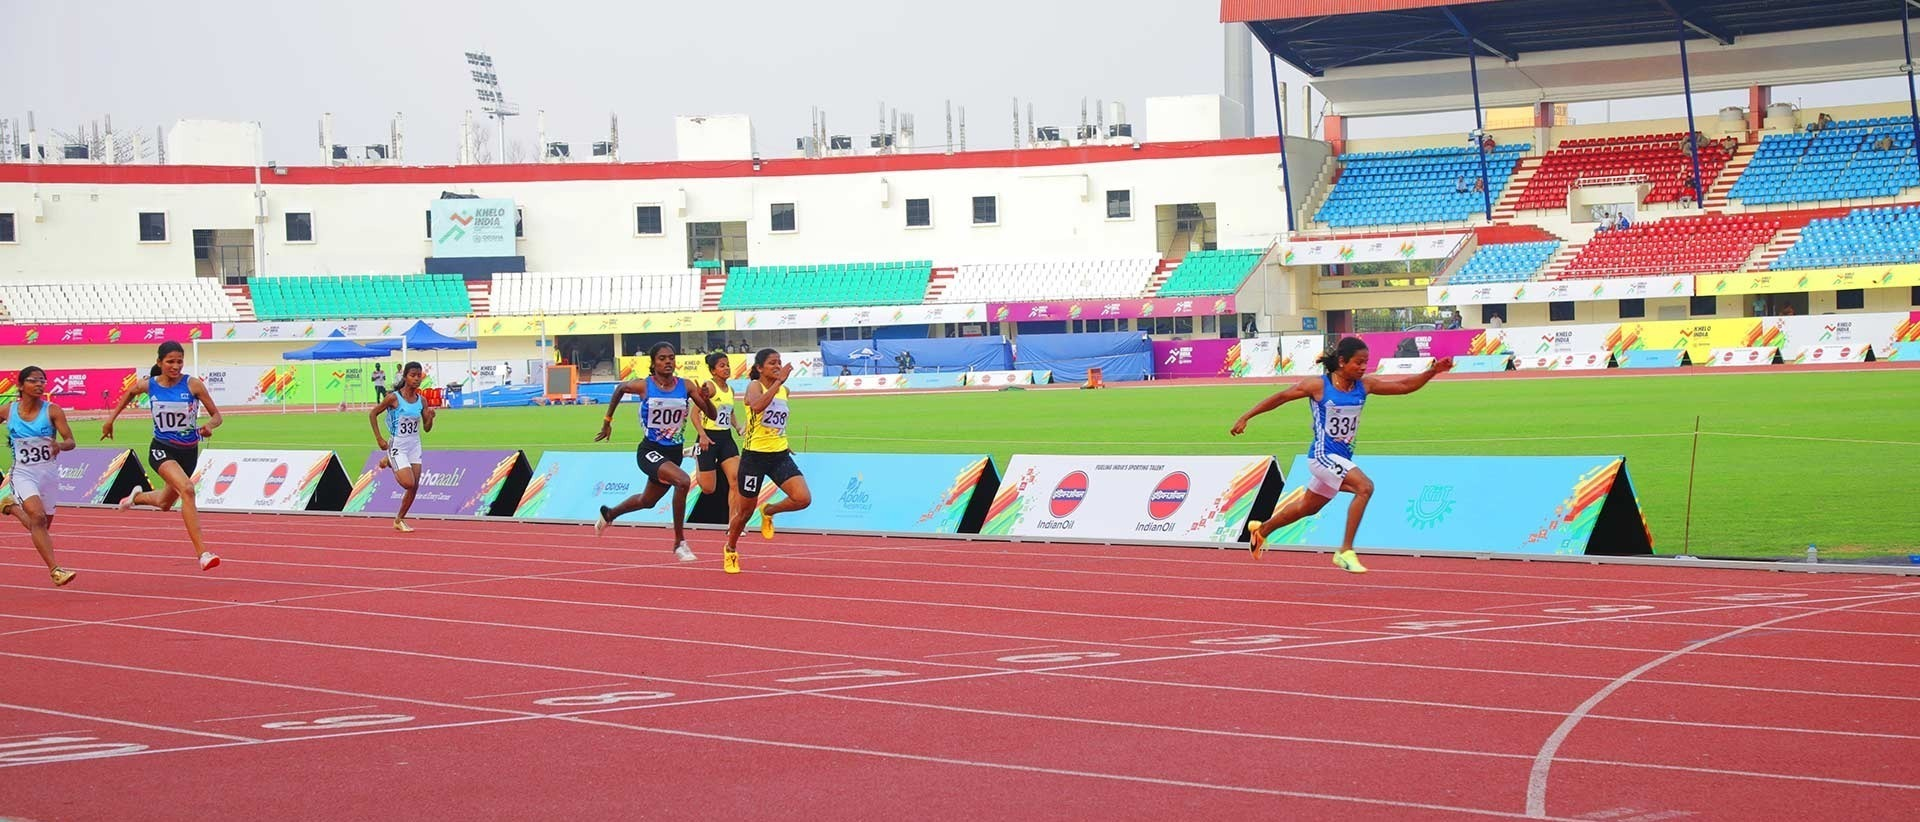 Dutee Chand sprints away with a new Indian Universities meet record